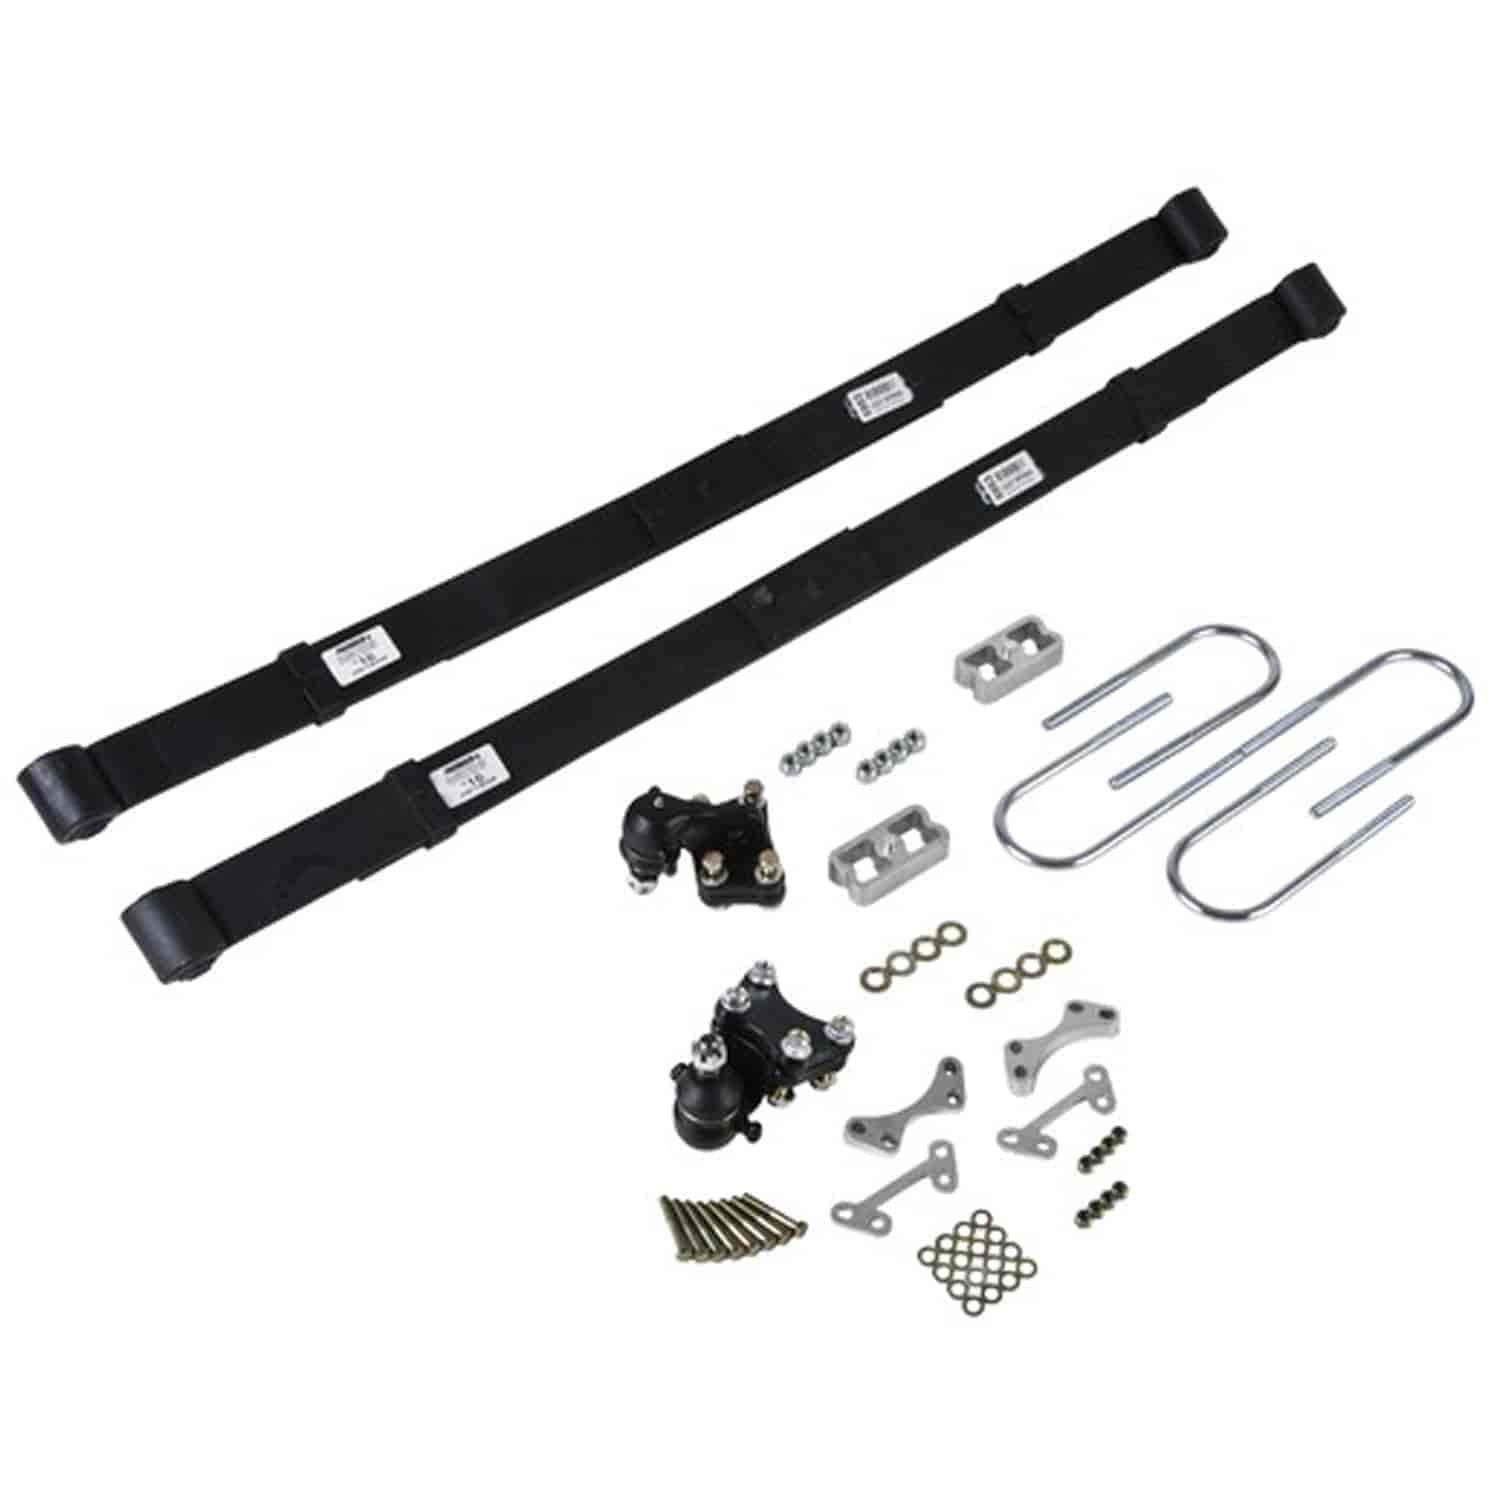 2012 Chevrolet Colorado Regular Cab Head Gasket: Belltech 604: Complete Lowering Kit For 2004-2012 Chevy